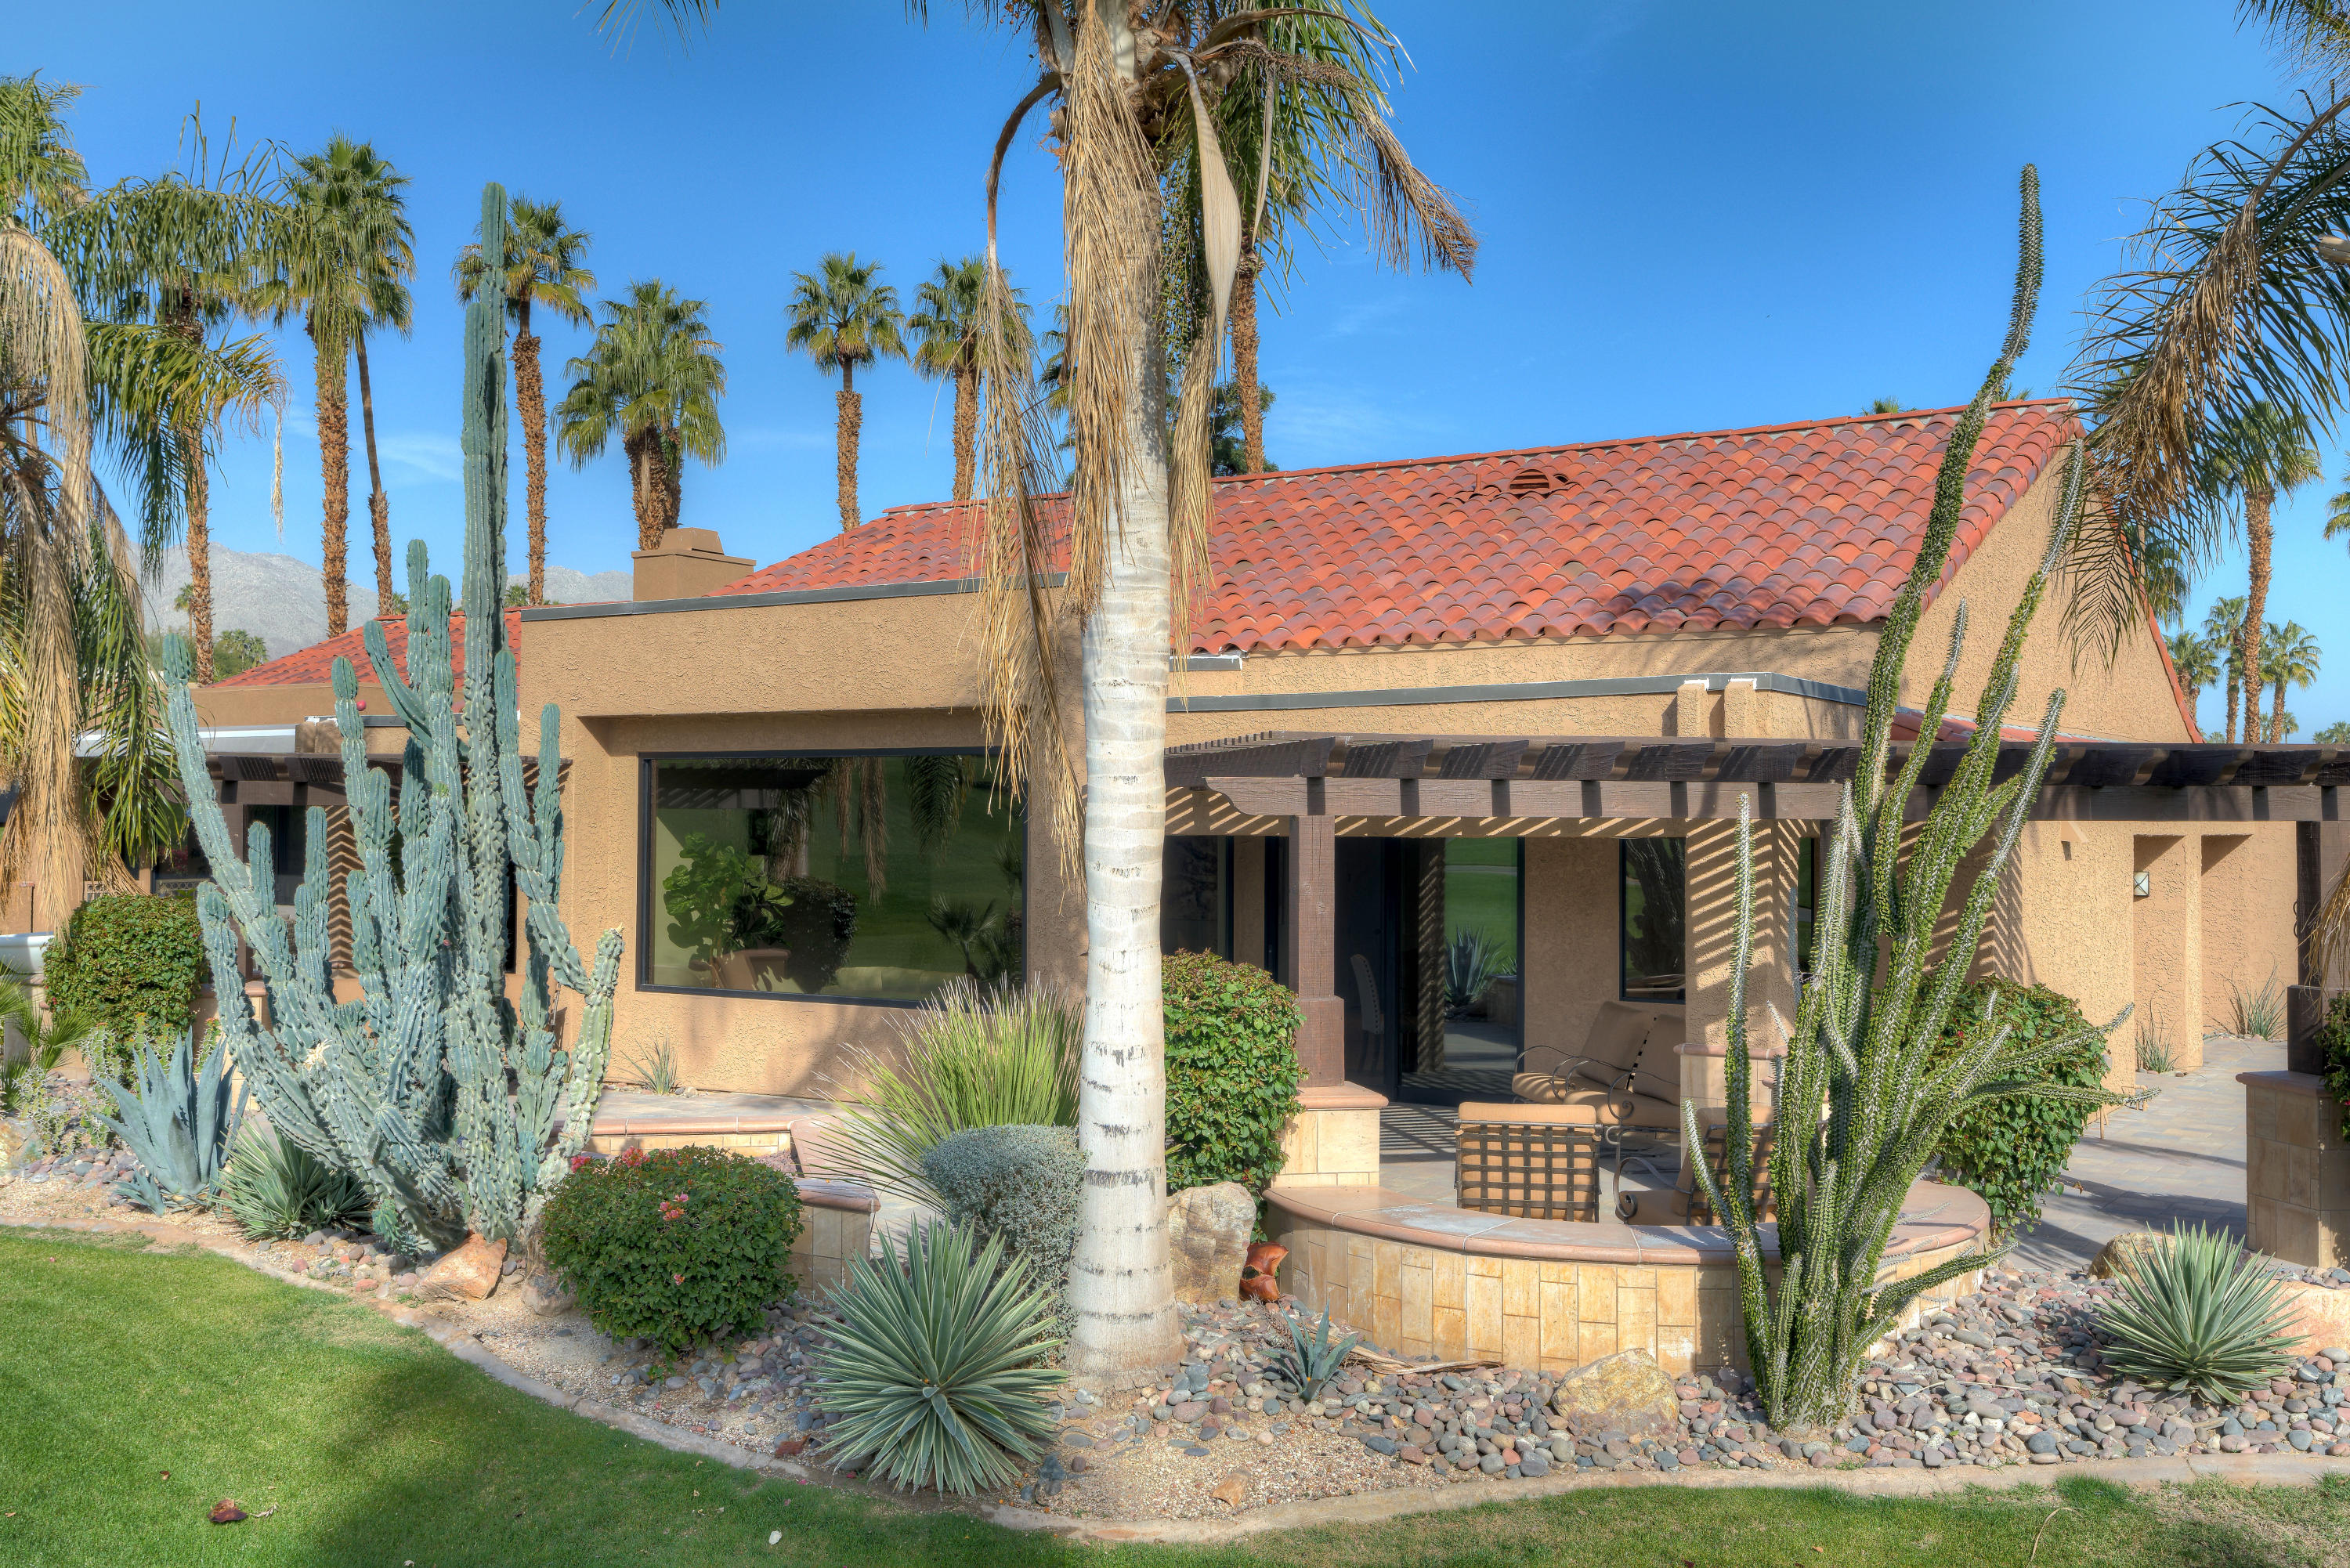 73725 Jasmine Place, Palm Desert, California 92260, 3 Bedrooms Bedrooms, ,3 BathroomsBathrooms,Residential,For Sale,73725 Jasmine Place,219035944